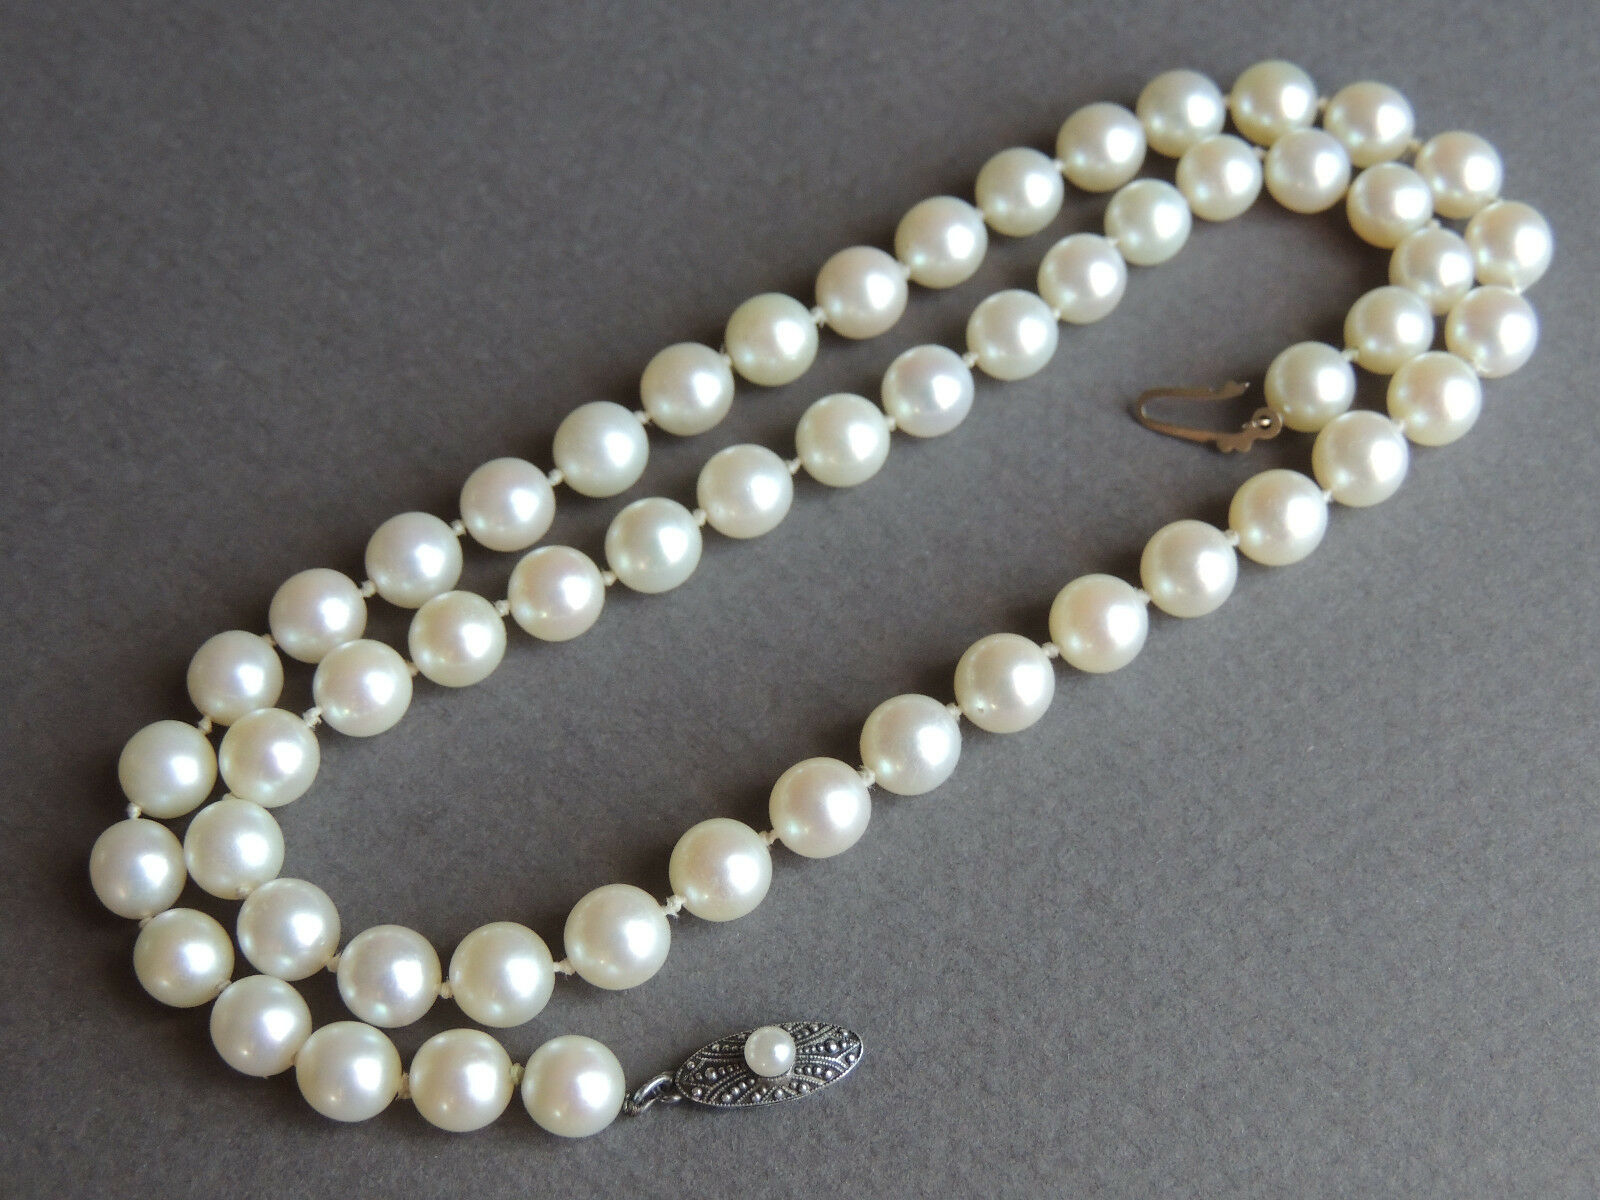 jeweller pearls strand akoya mikimoto cultured necklace laings pearl